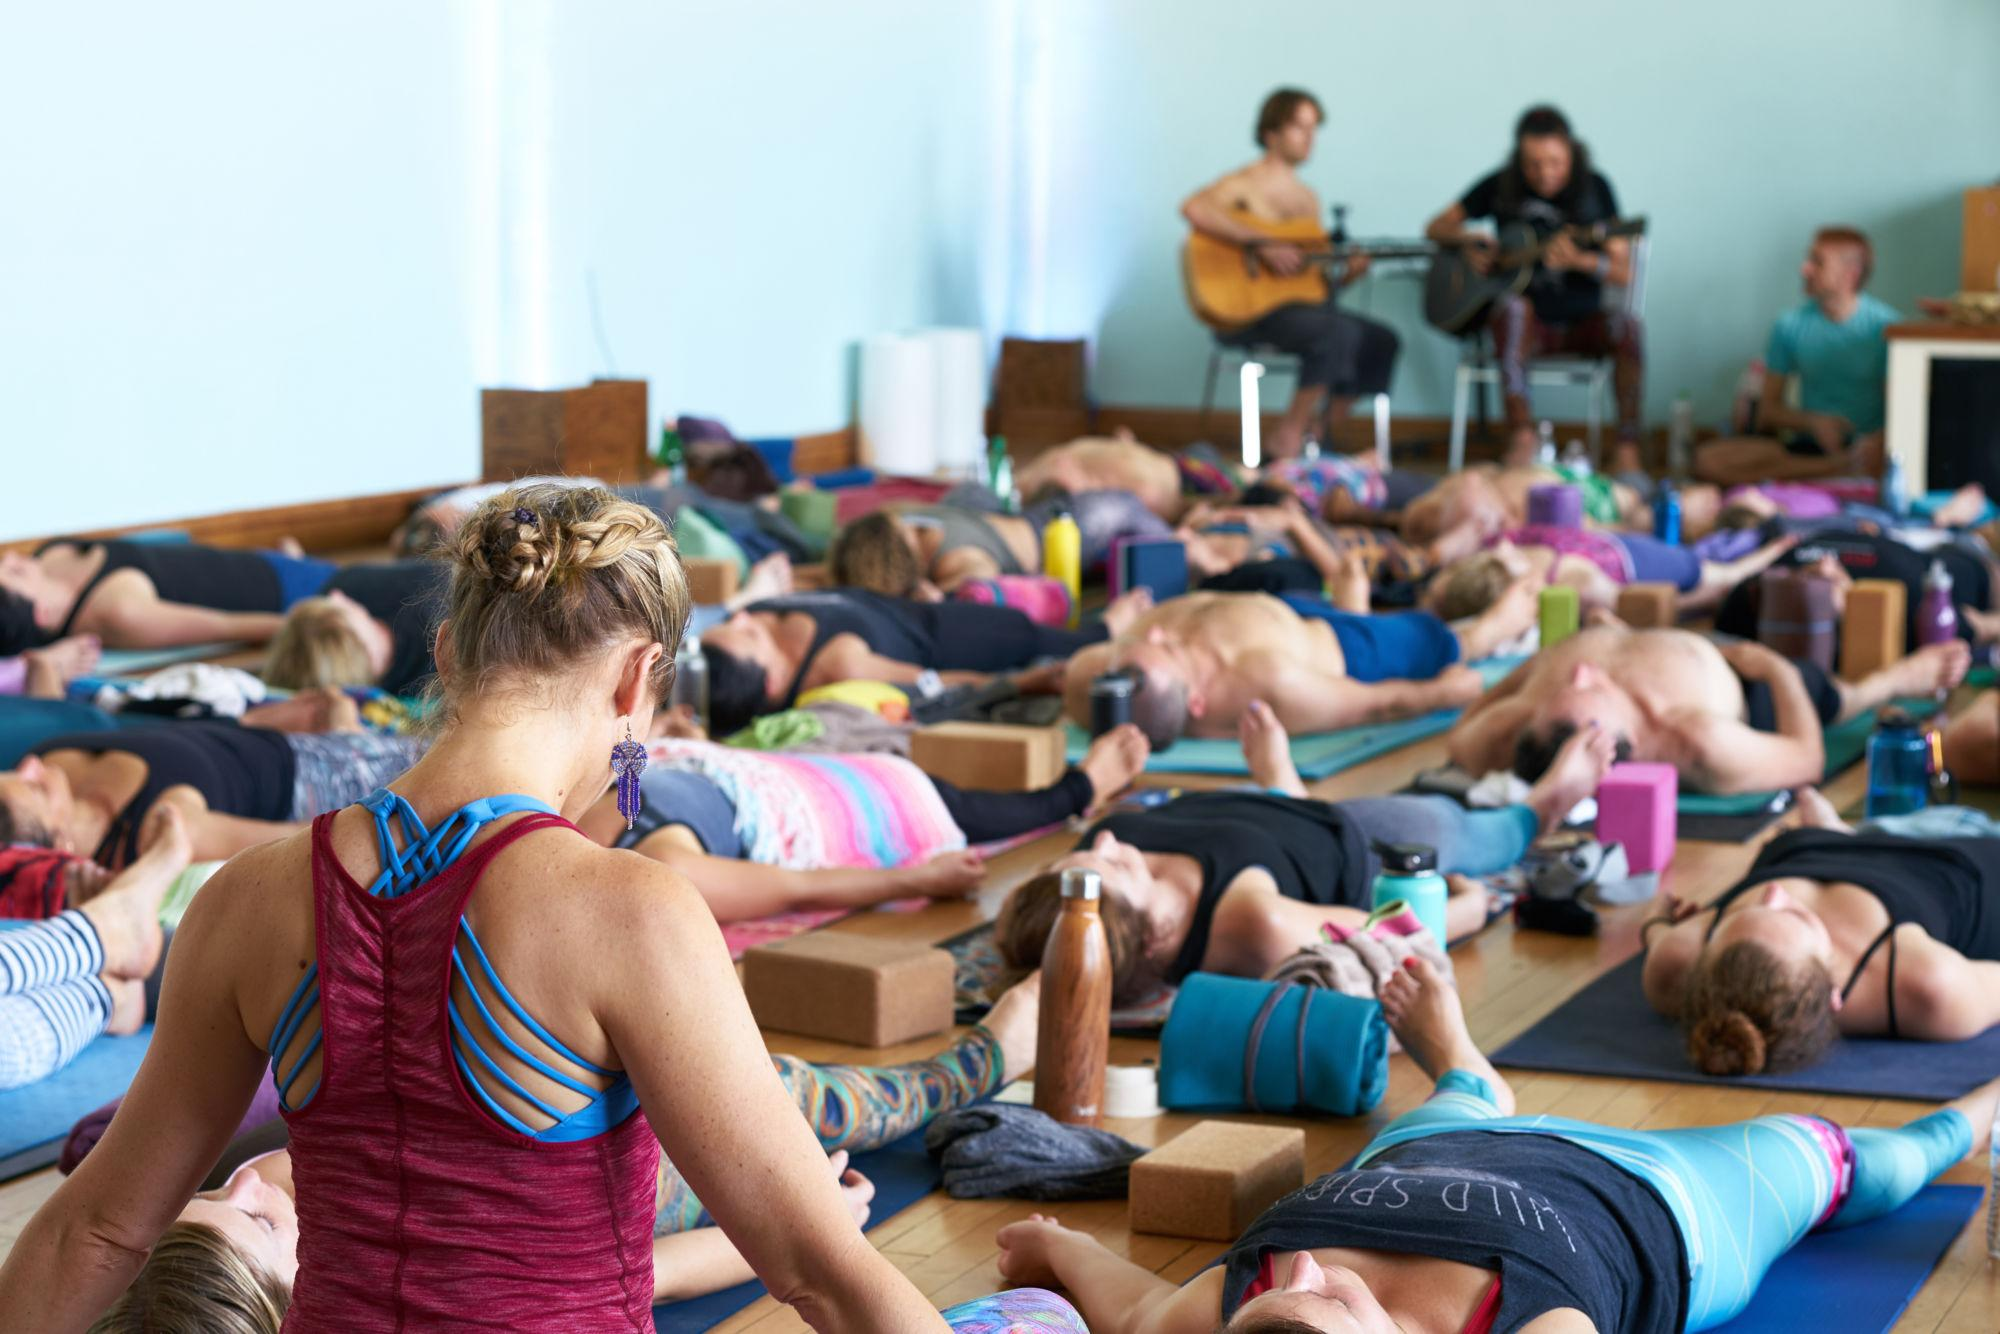 Yoga poses calming way to connect with mind and body